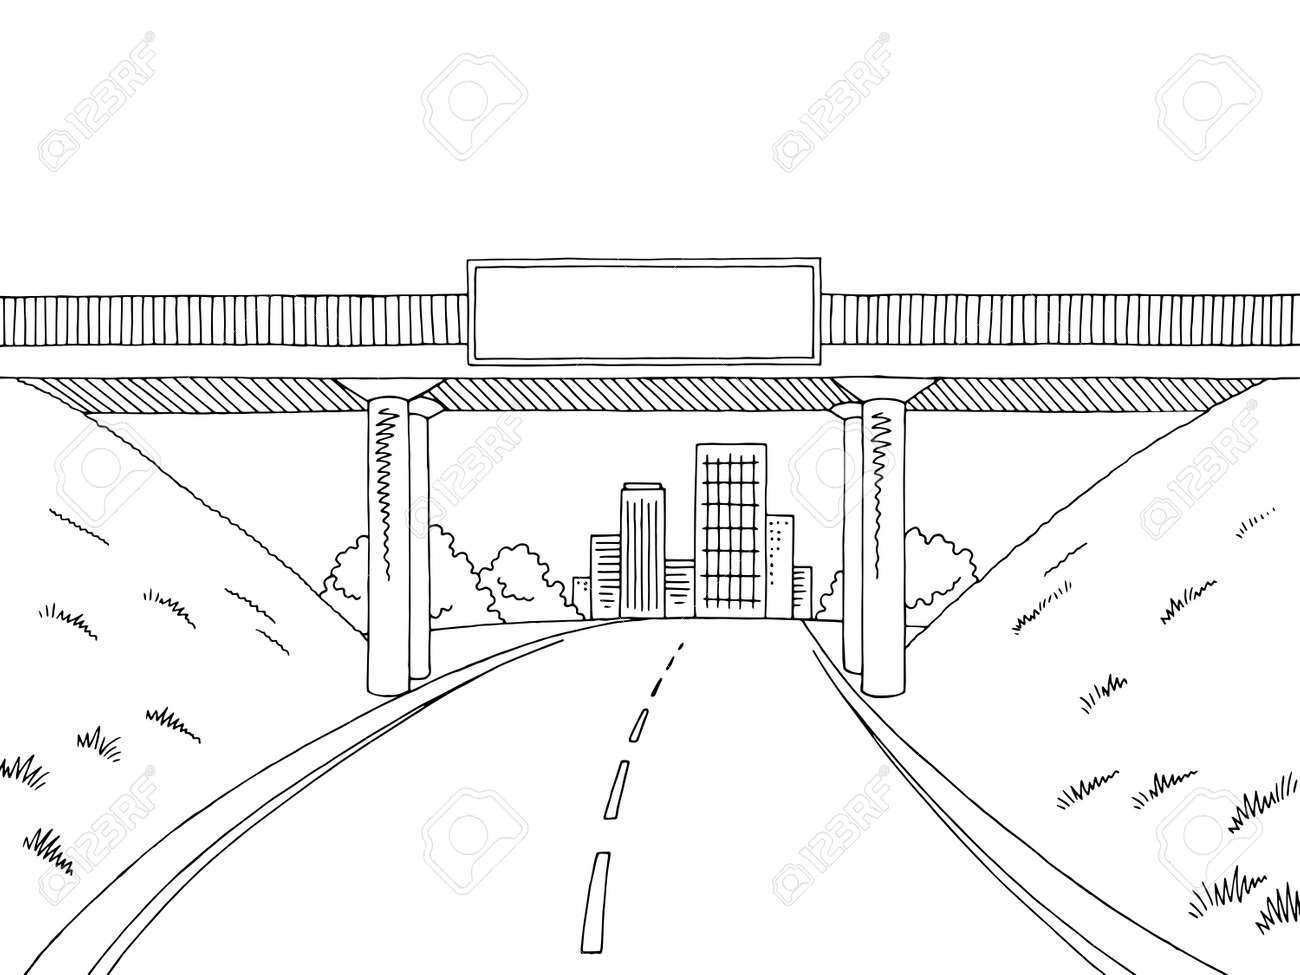 Road Bridge Graphic Black And White City Sketch Illustration Royalty Free Cliparts Vectors And Stock Illustration Image 98142330